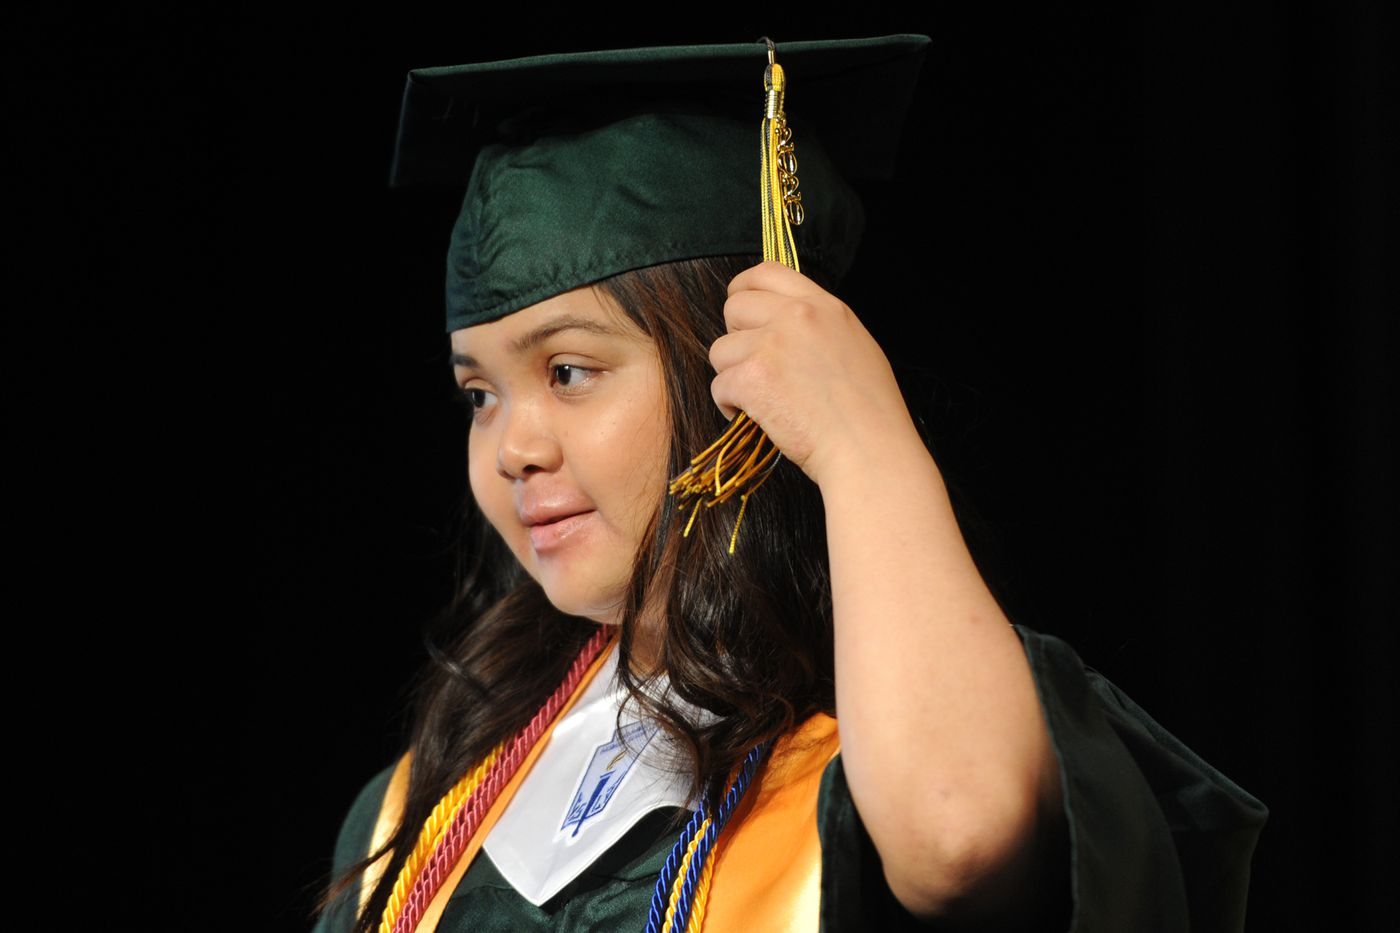 Service High School graduating senior Alexis Nicolas moves her tassel from right to left after walking across the stage on Tuesday, May 19, 2020. (Bill Roth / ADN)